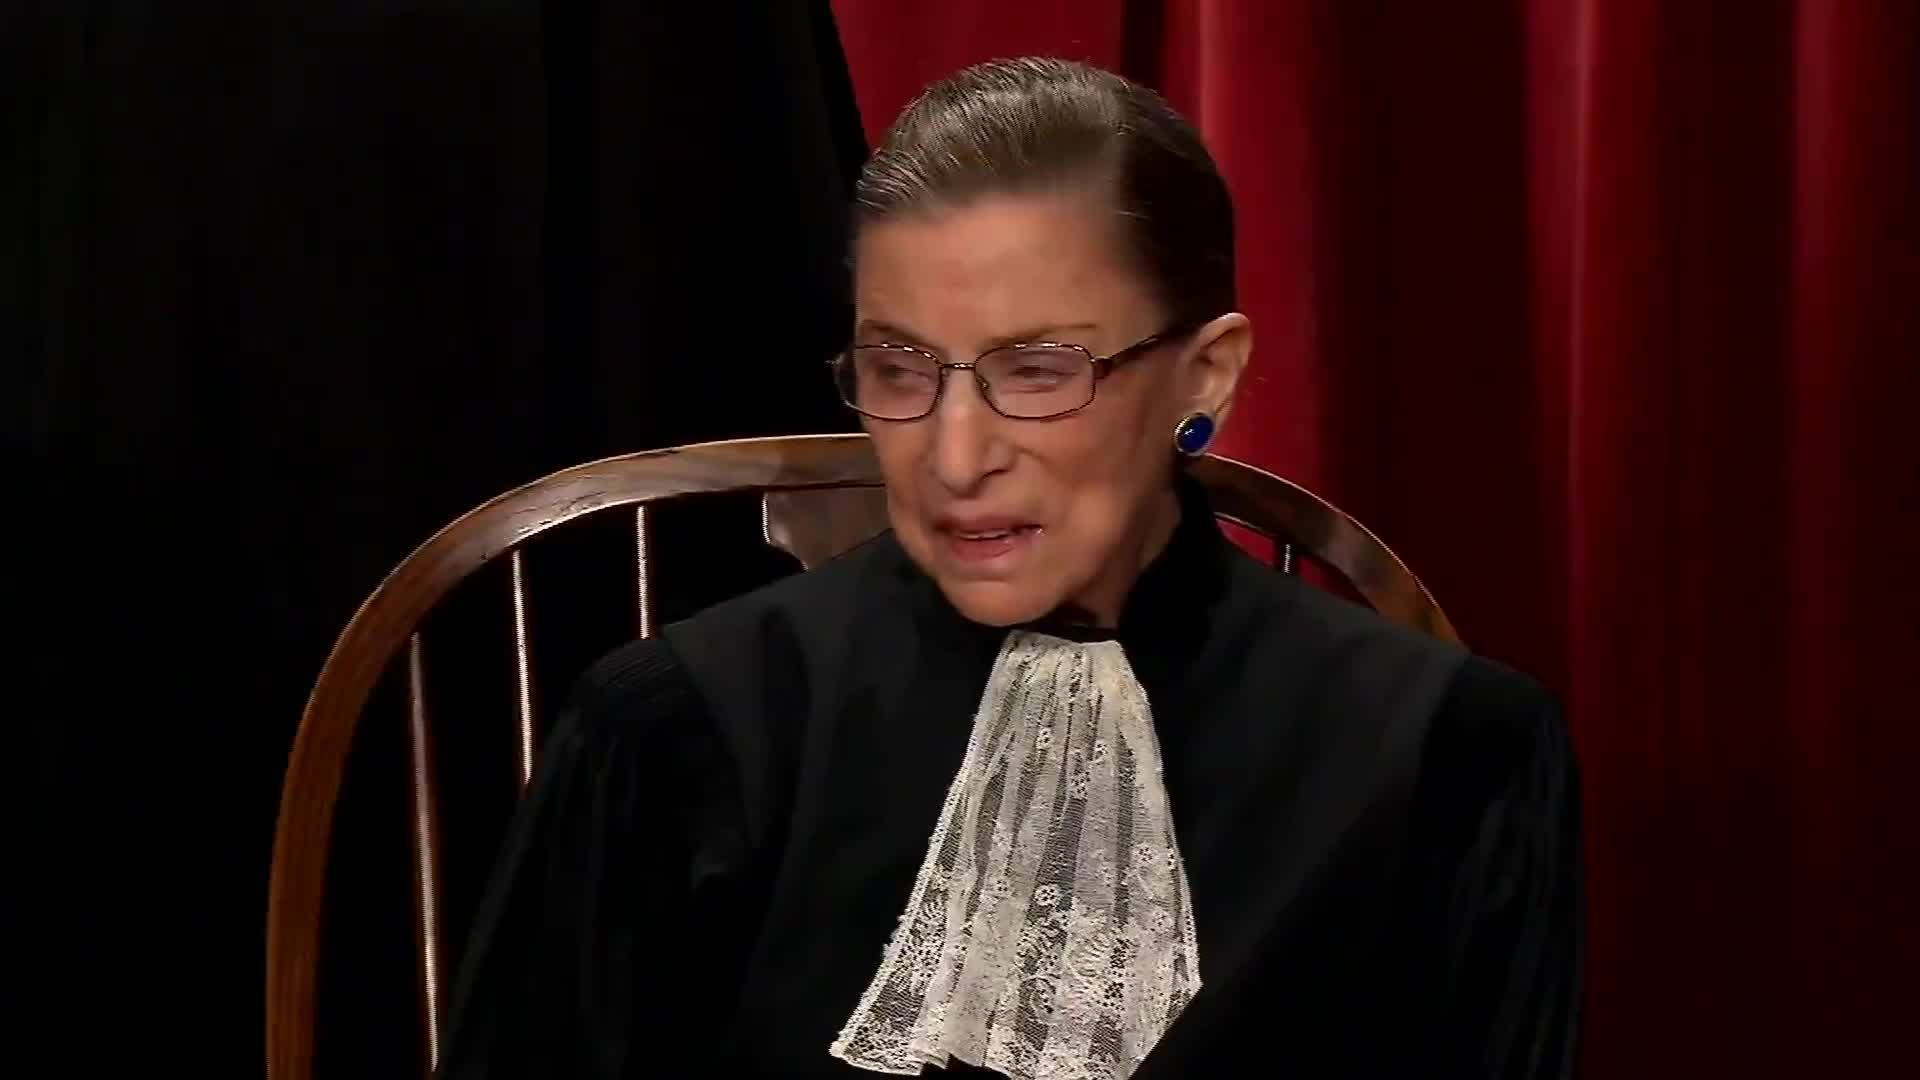 RBG_third_day_out_1_20190109192116